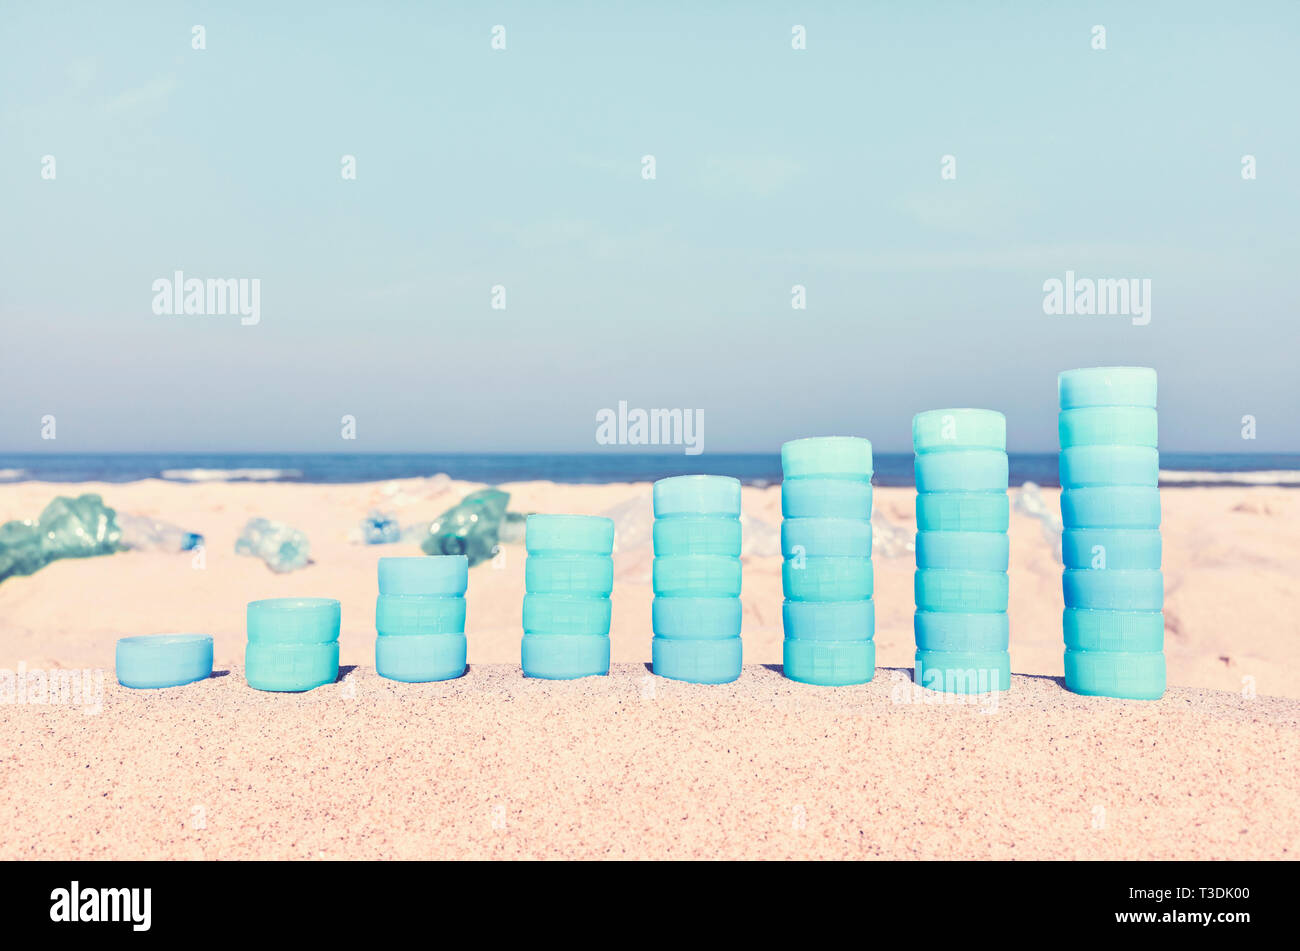 Chart made of plastic bottles caps on sand showing the increase in use of plastic products, color toned picture, selective focus. - Stock Image